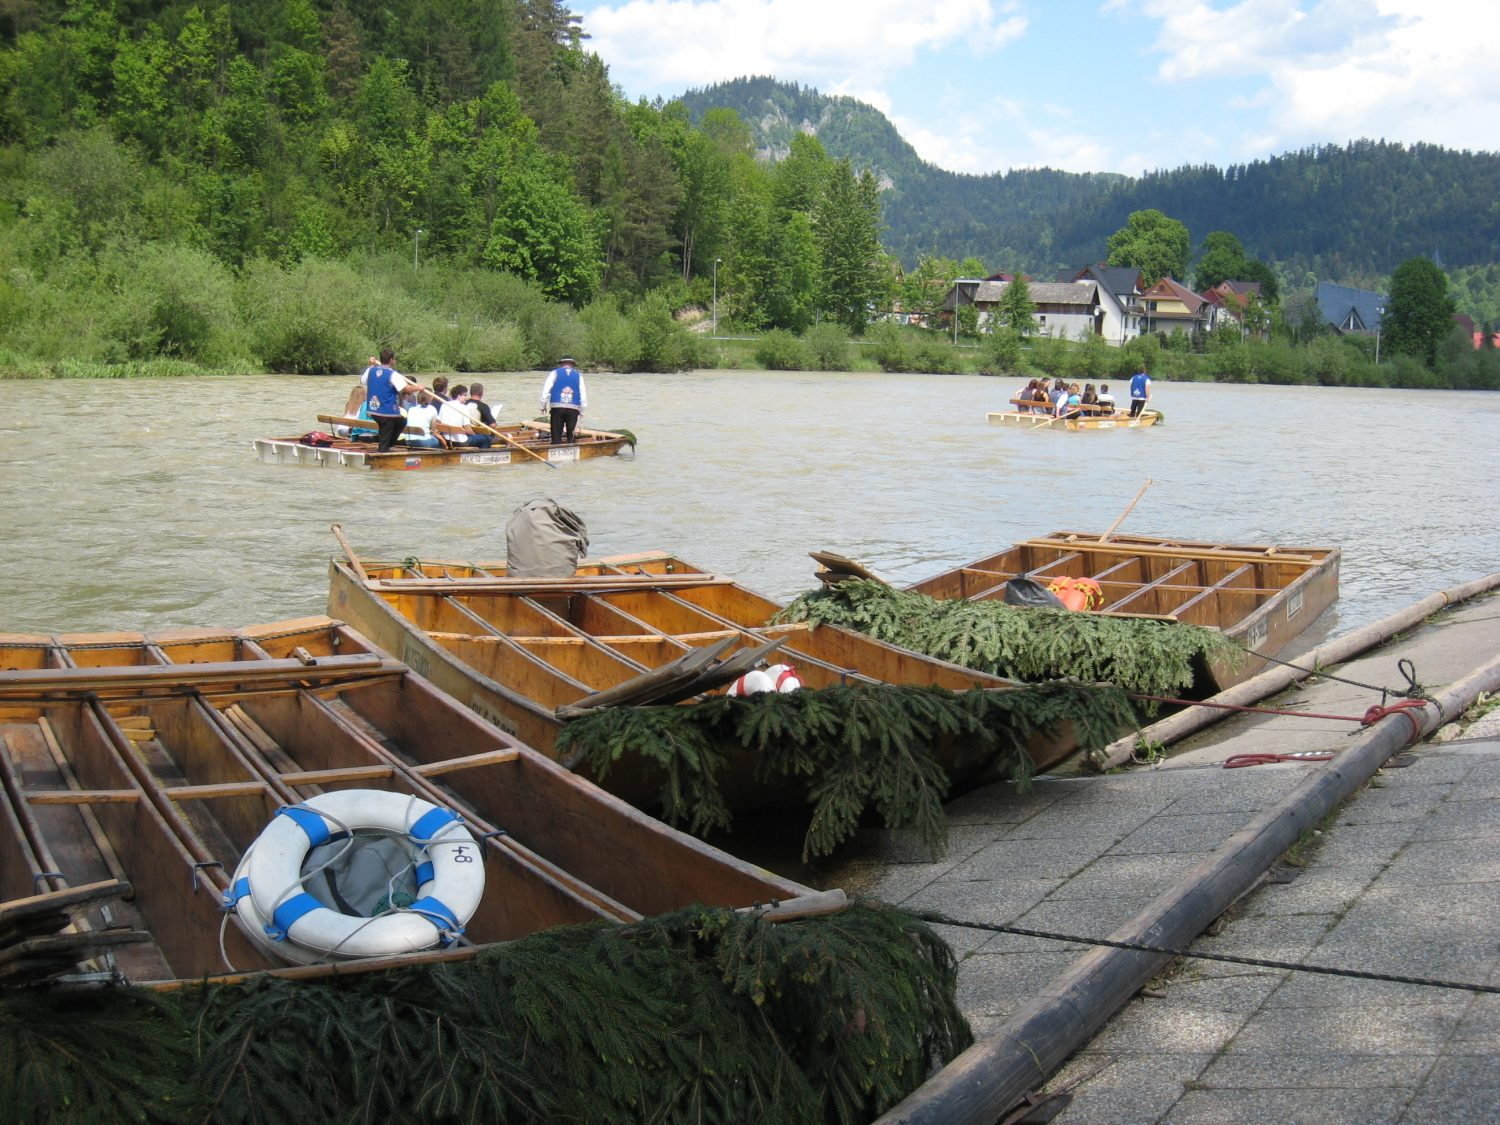 Rafts on Dunajec ready for rafting (photo by Mária Laurincová)